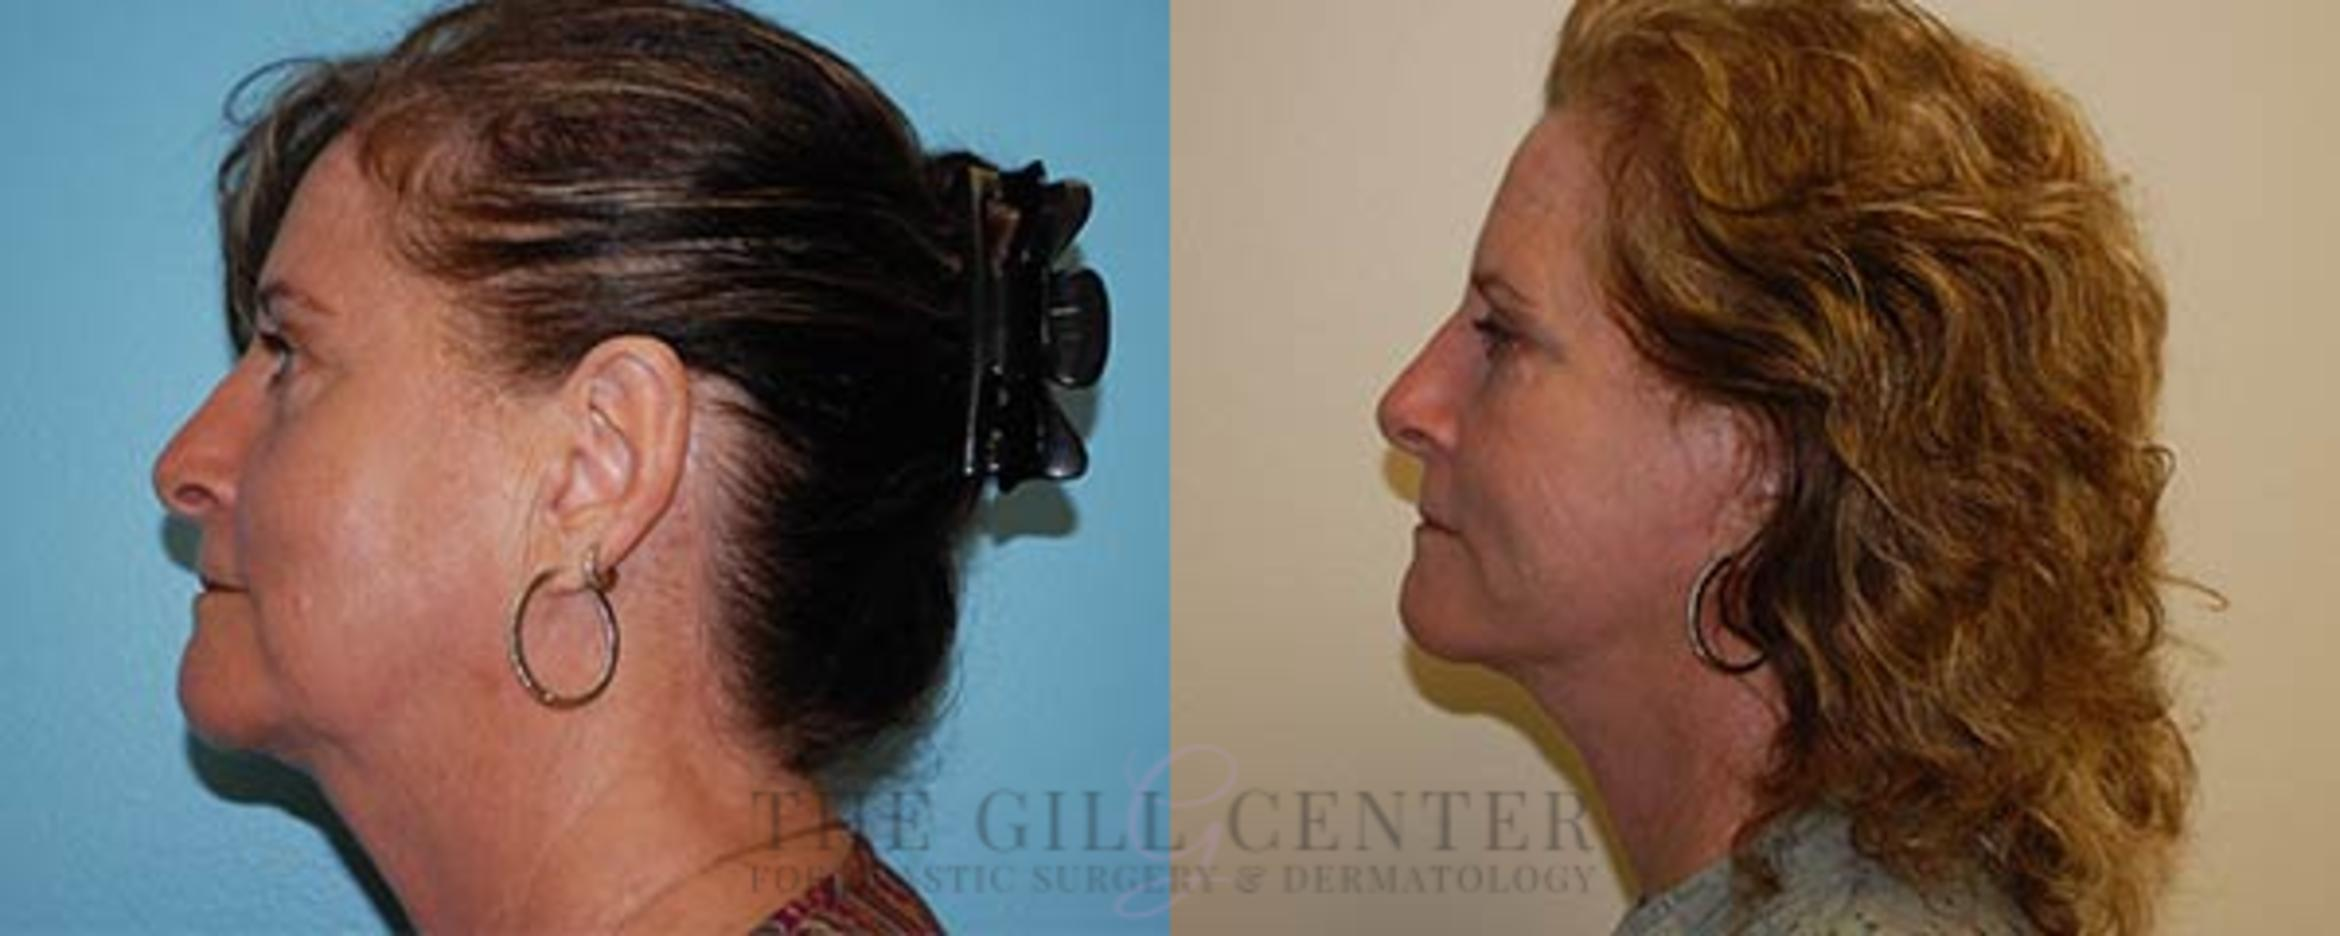 Face & Neck Lift Case 414 Before & After Left Side | Shenandoah, TX | The Gill Center for Plastic Surgery and Dermatology